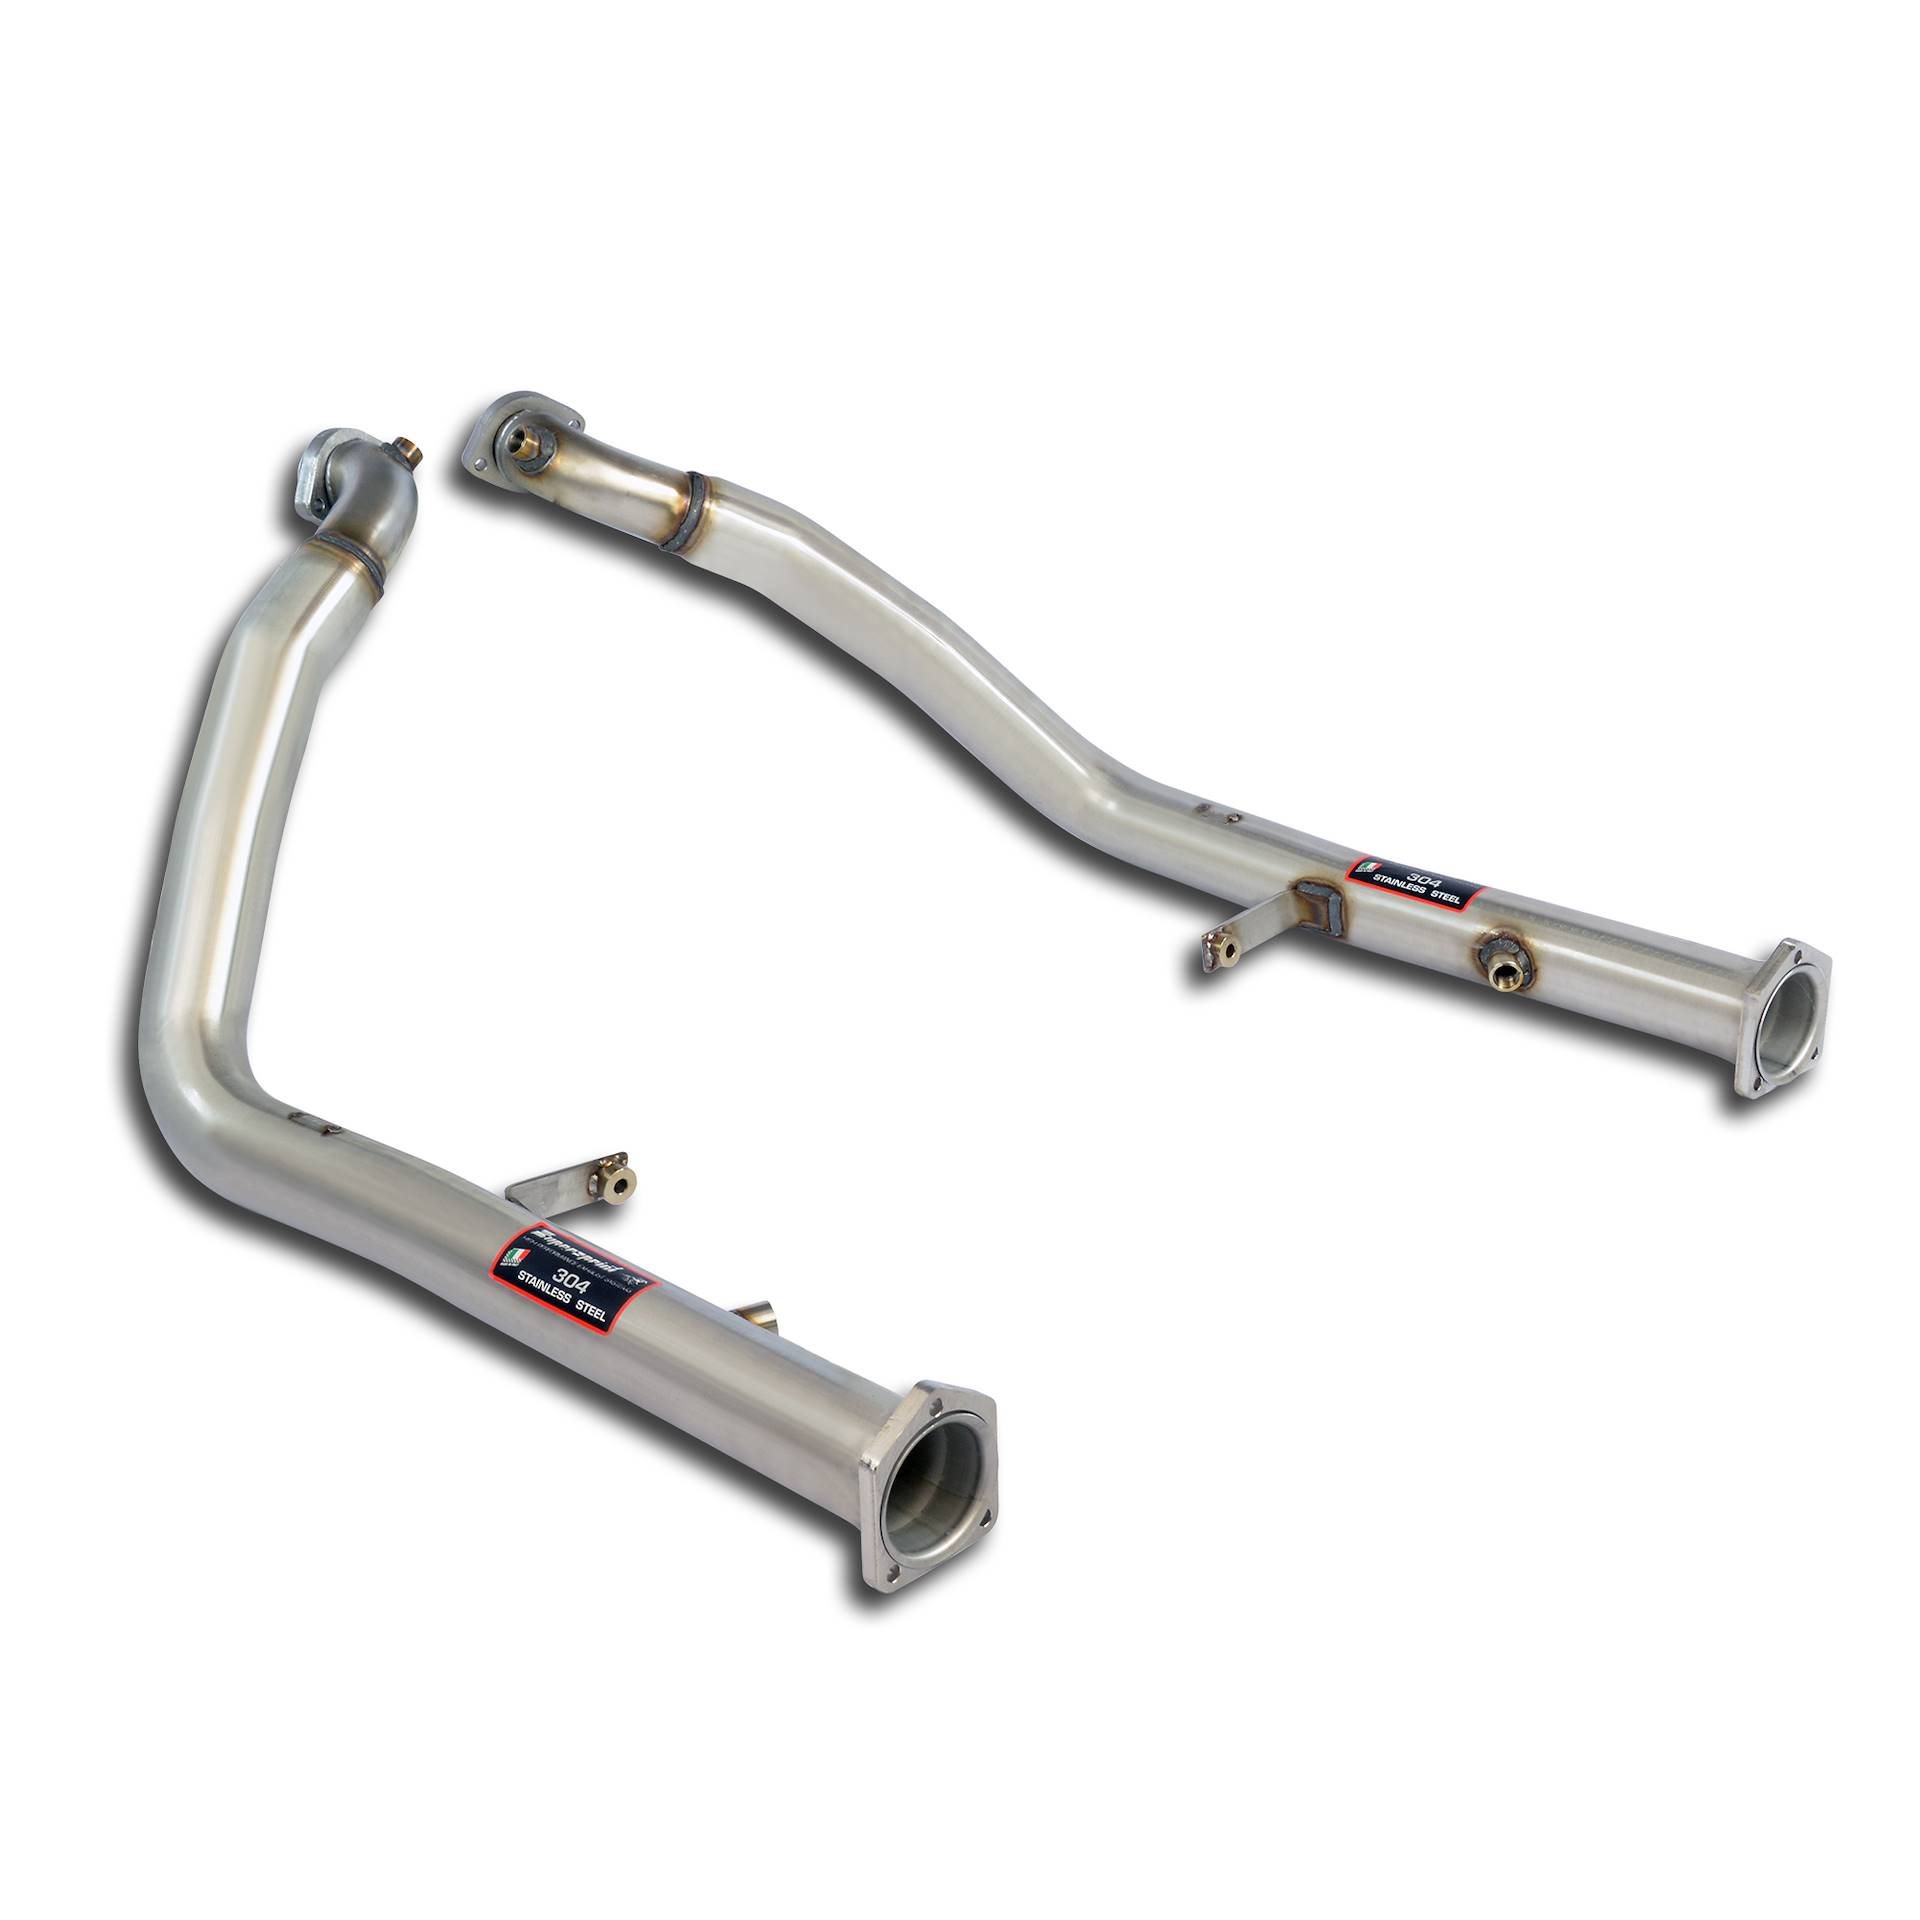 Mercedes - MERCEDES W463 (2-door) G500 V8 (M113 3v Engine) 1998 -> 2008 Downpipe kit Right + Left<br>(Replaces catalytic converter), performance exhaust systems